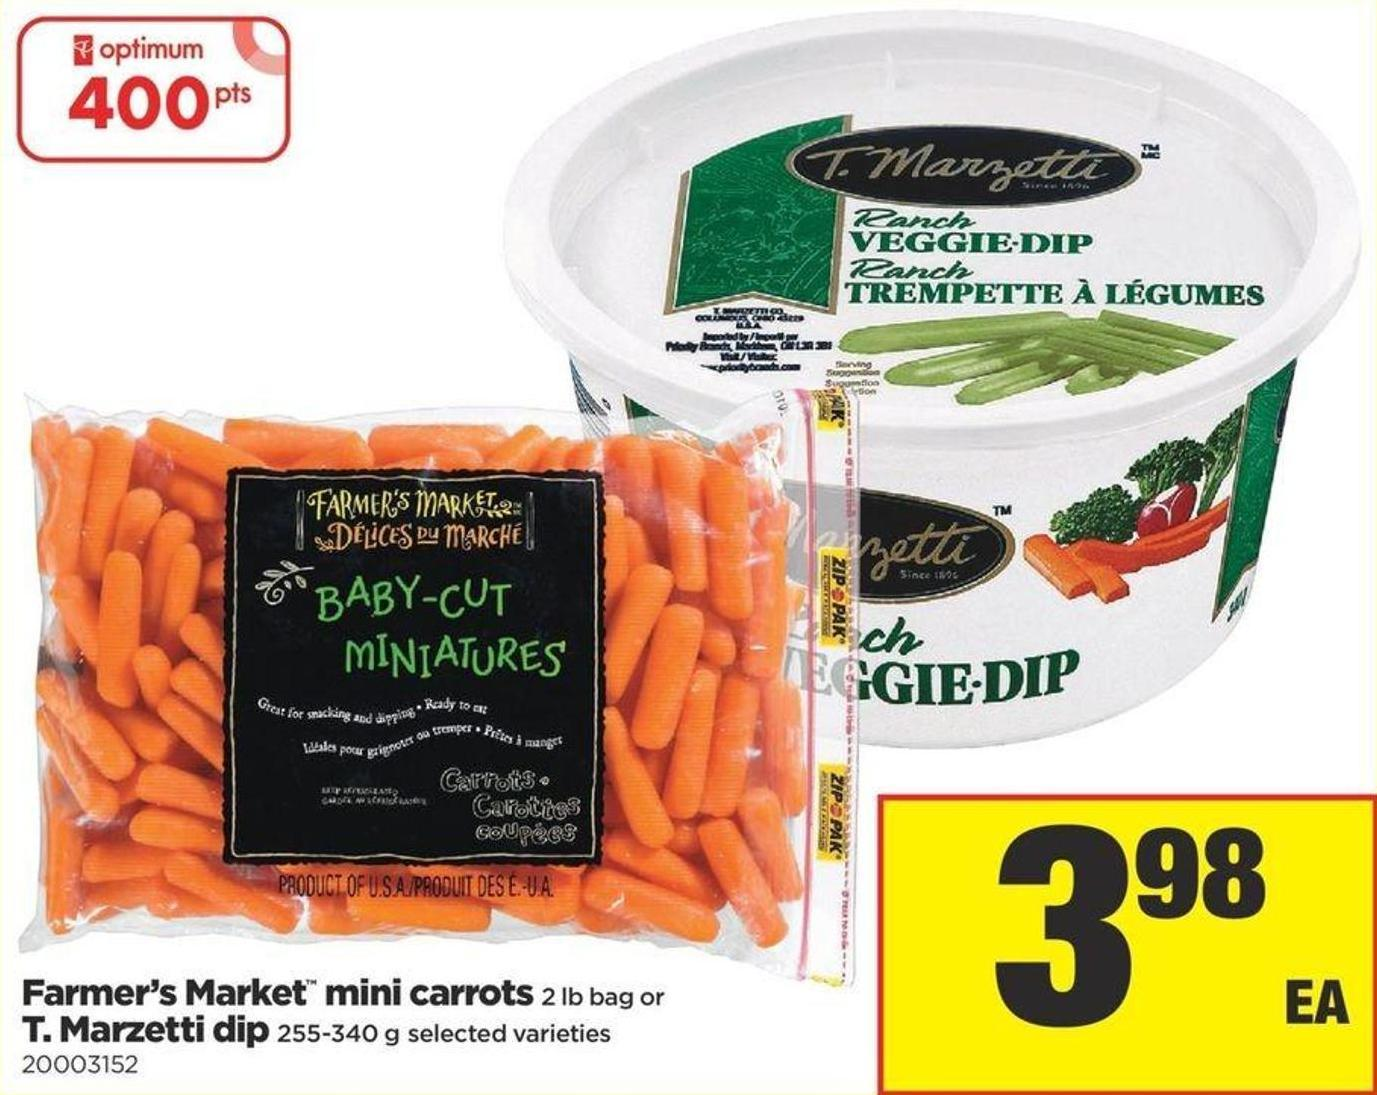 Farmer's Market Mini Carrots - 2 Lb Bag or T. Marzetti Dip - 255-340 g